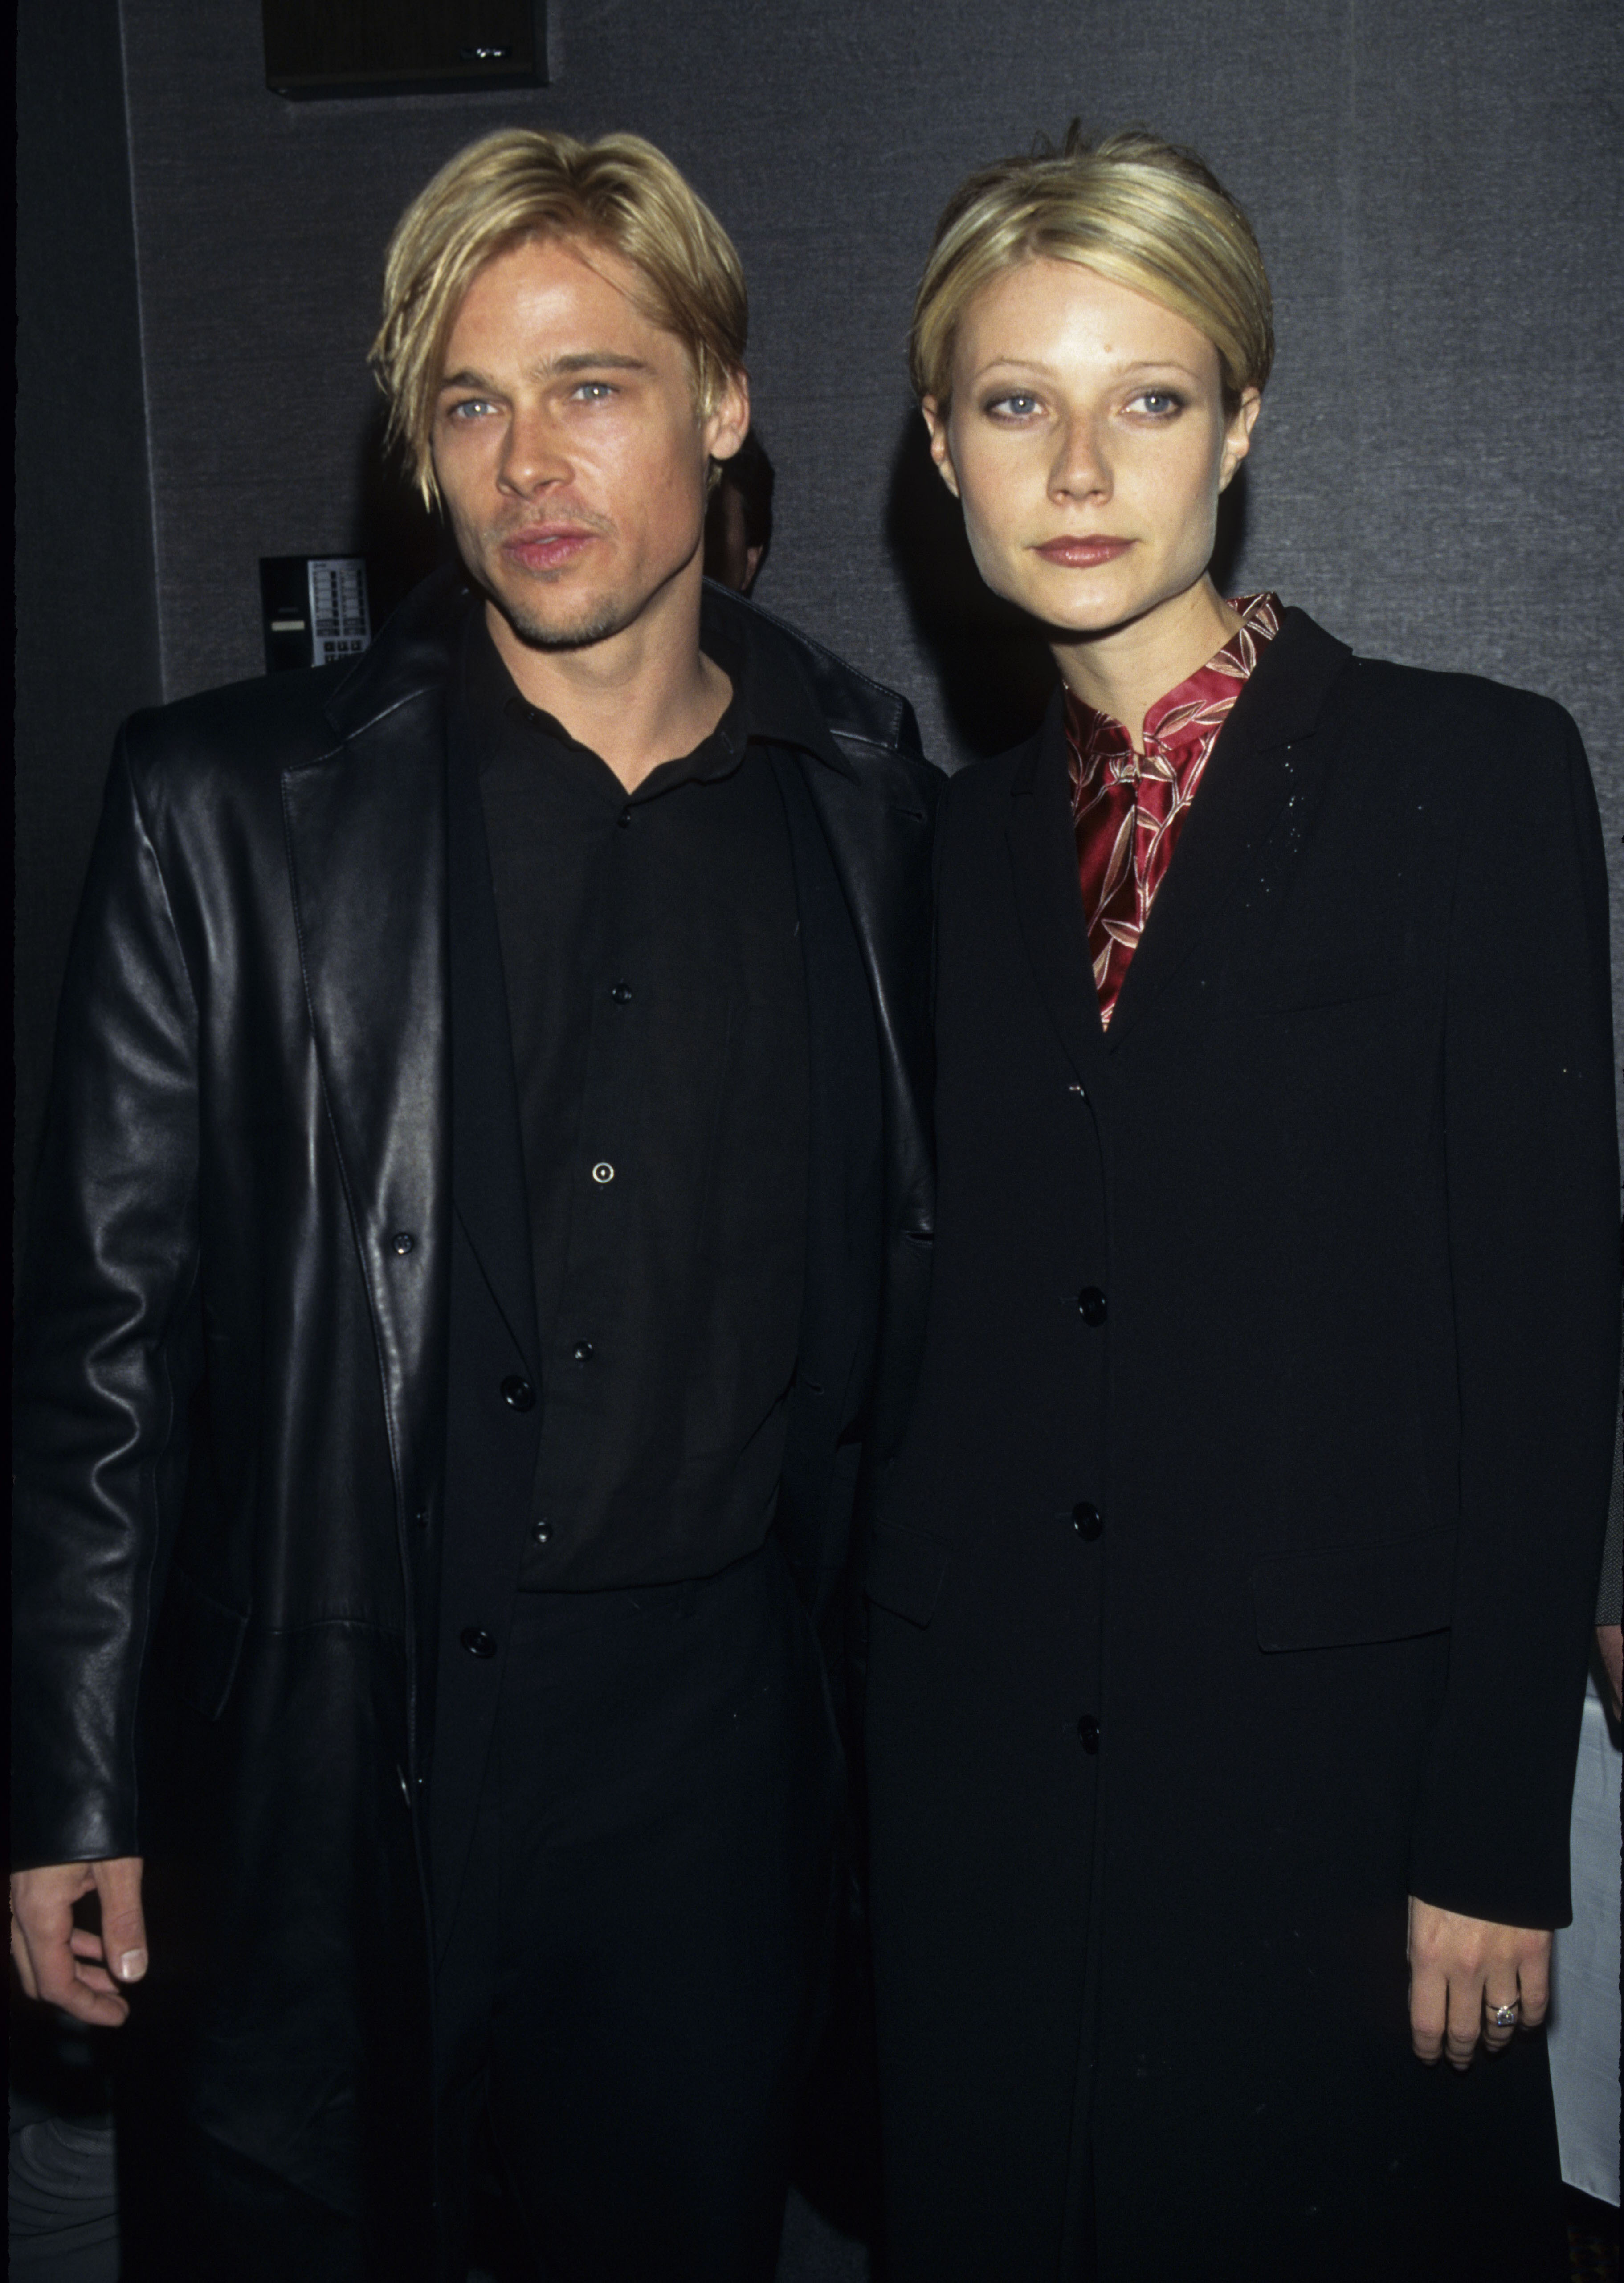 Brad Pitt and actress Gwyneth Paltrow attend 'The Devil's Own' New York City Premiere at City Cinemas Cinema 1 in New York City on March 13, 1997 .